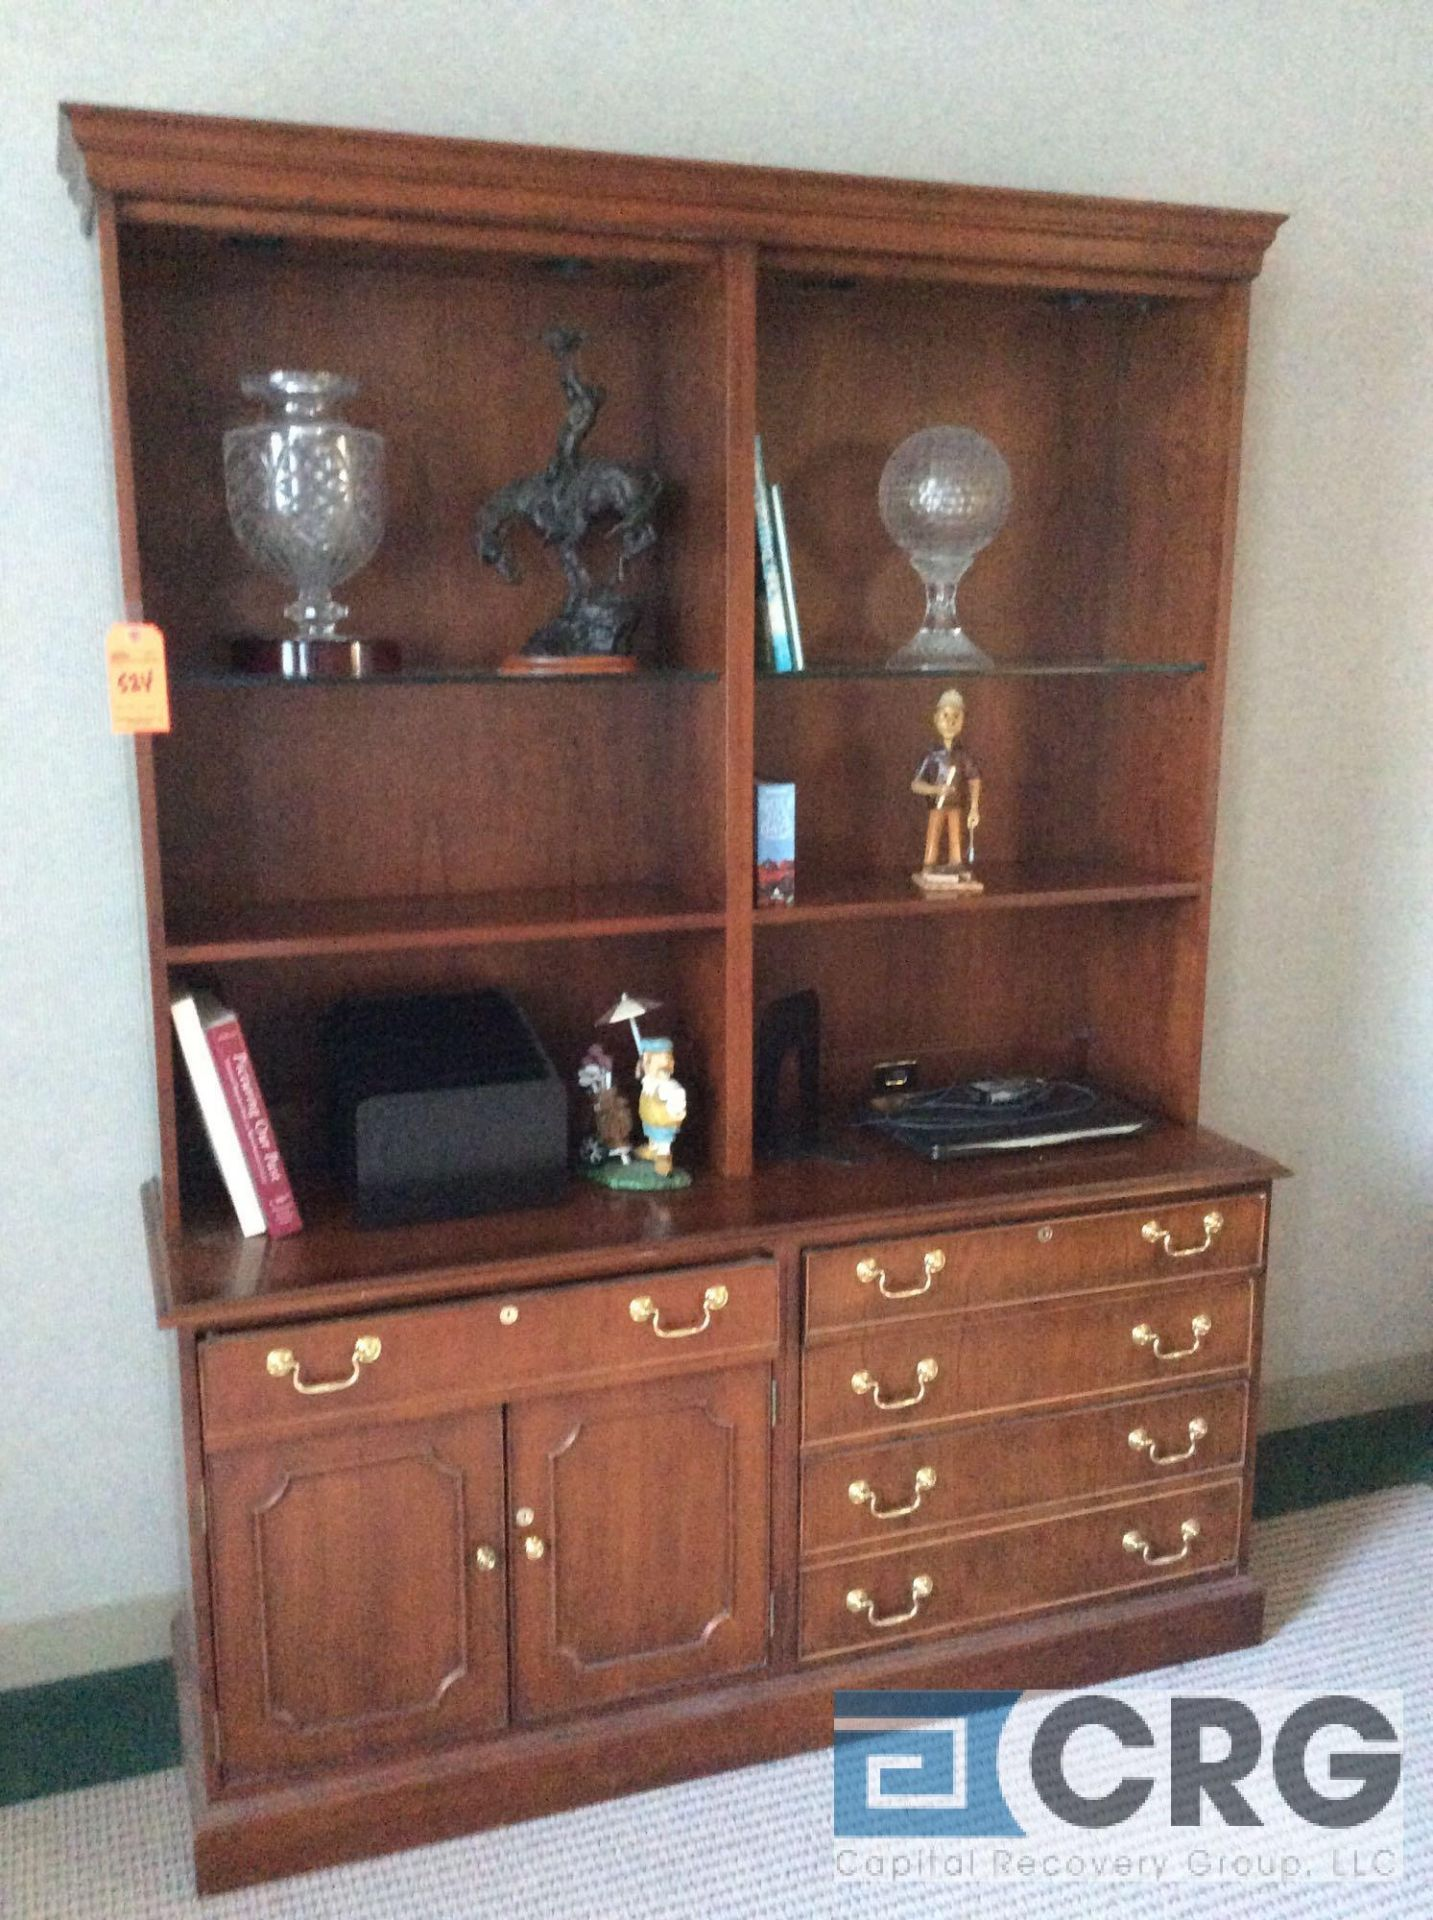 Lot 524 - 5 foot wood hutch (NO CONTENTS)